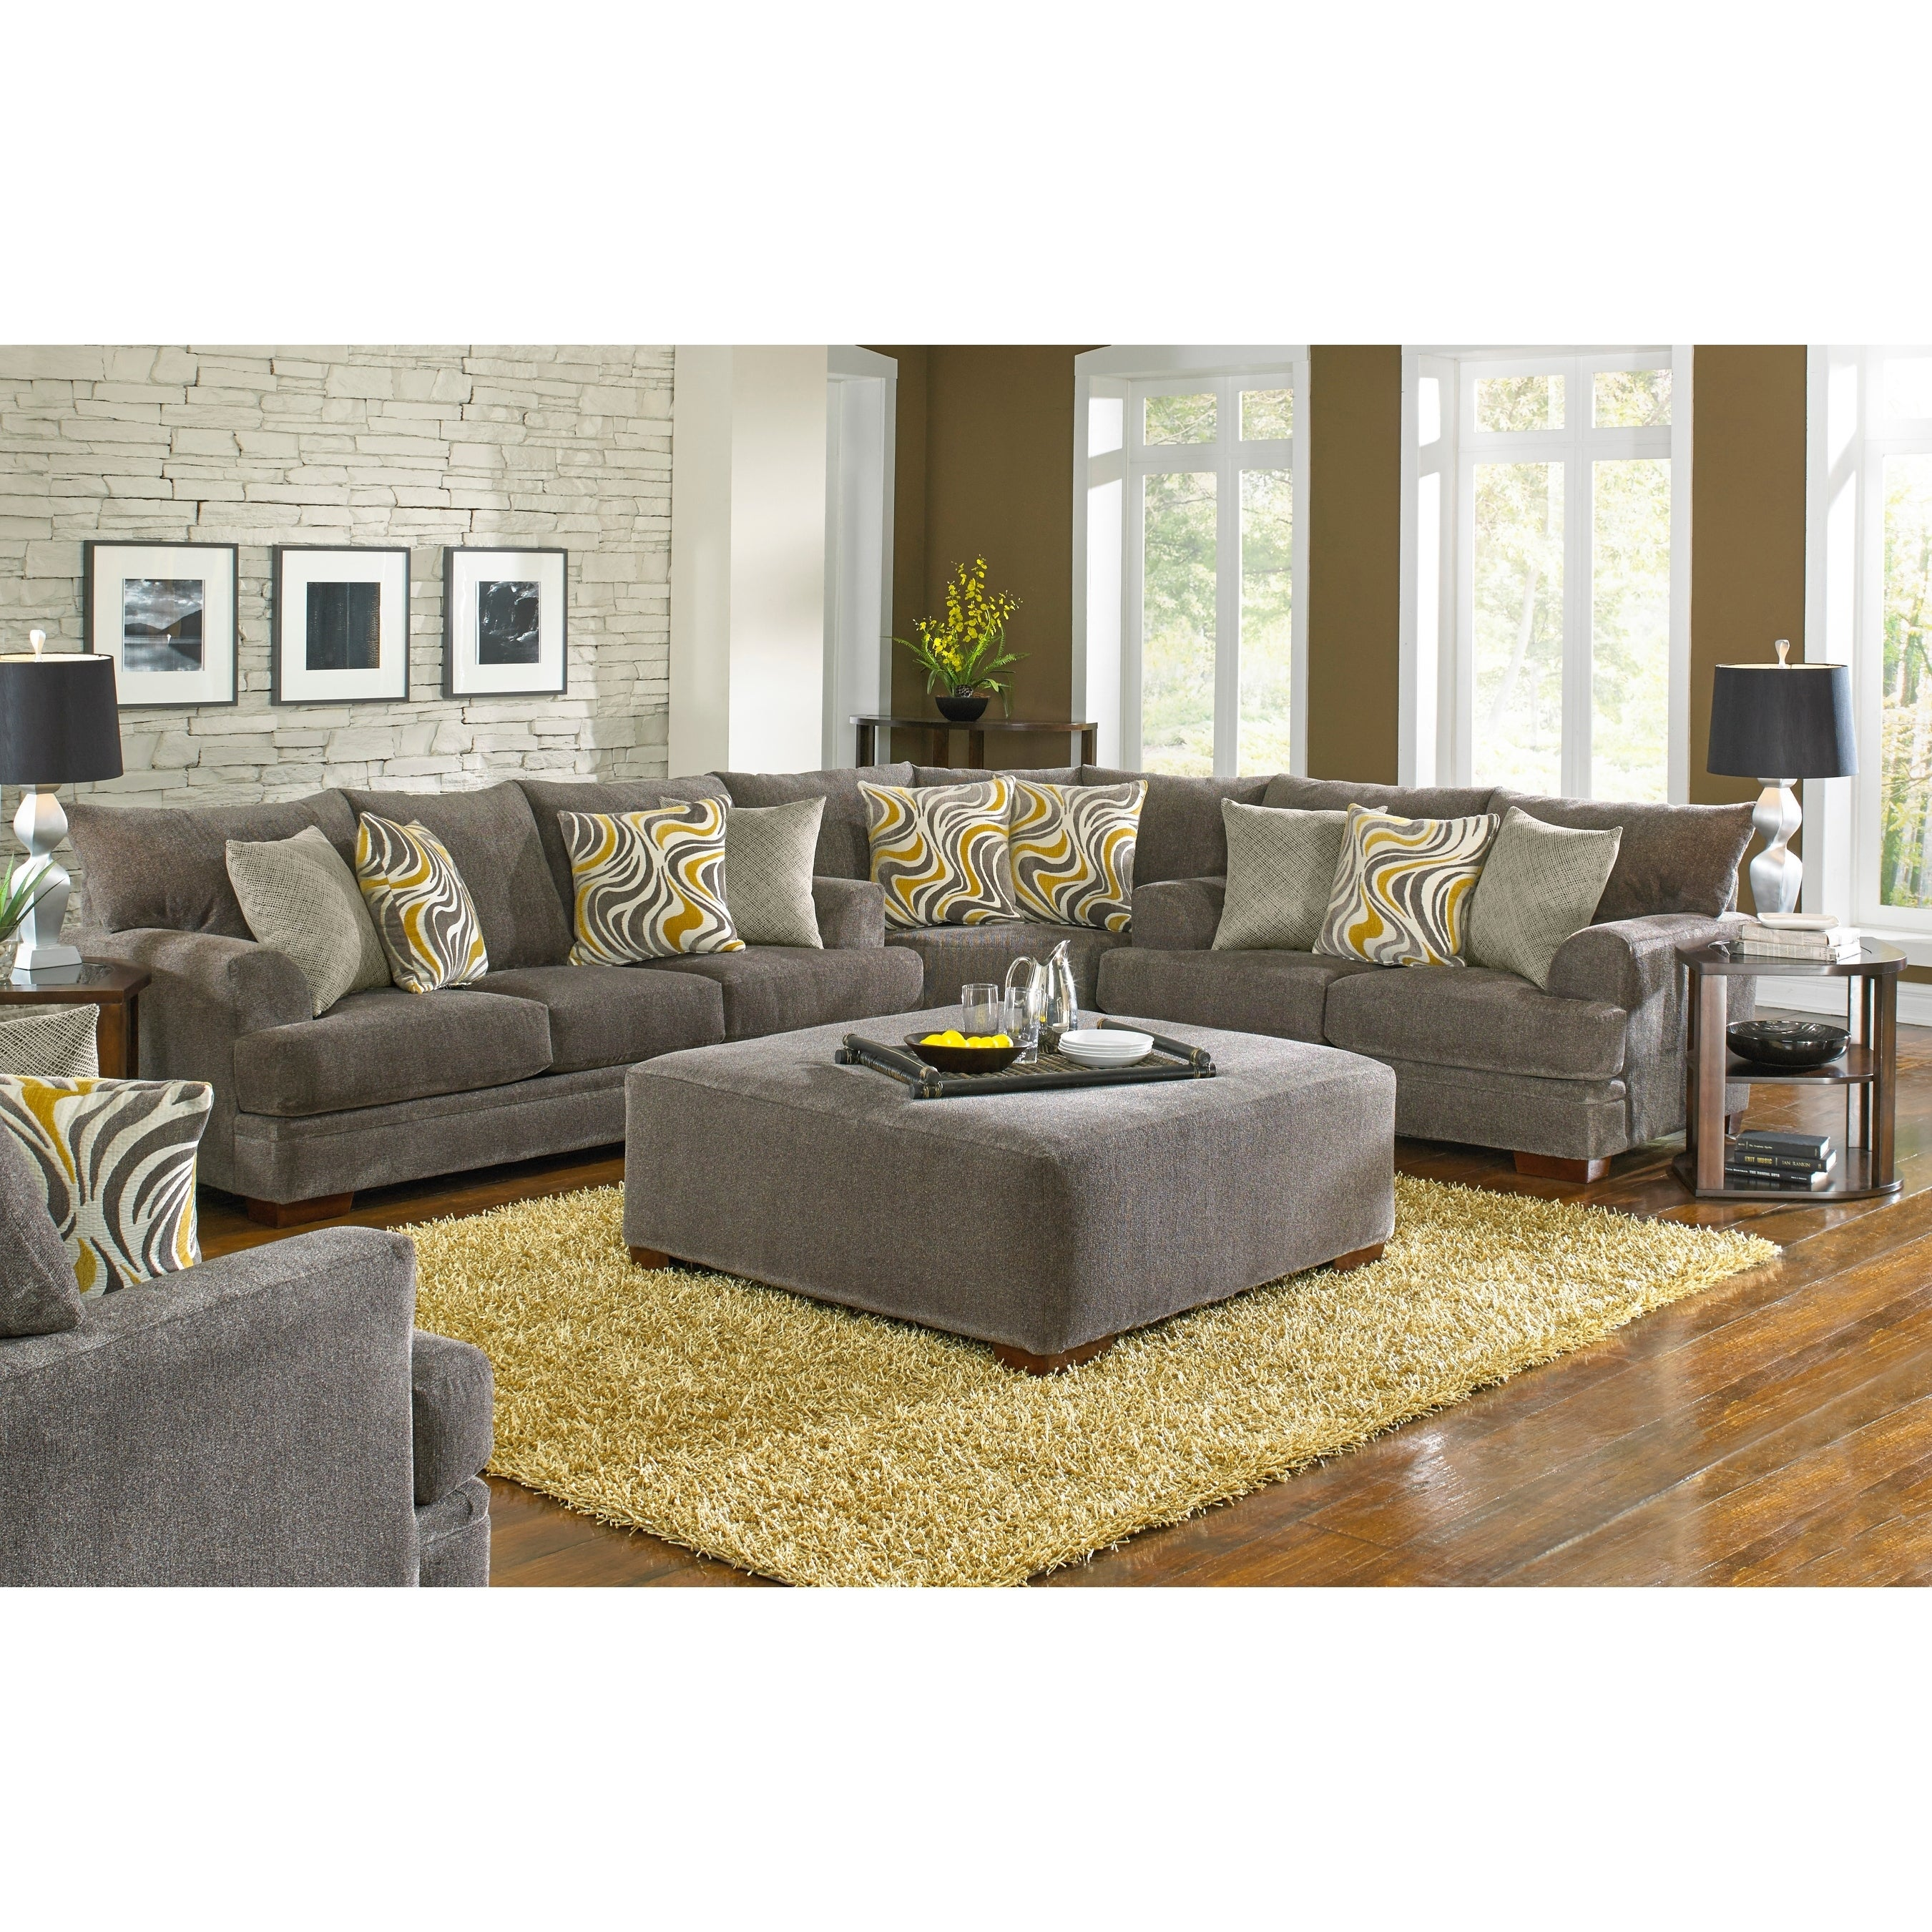 Sybil Sectional And Ottoman Living Room Set